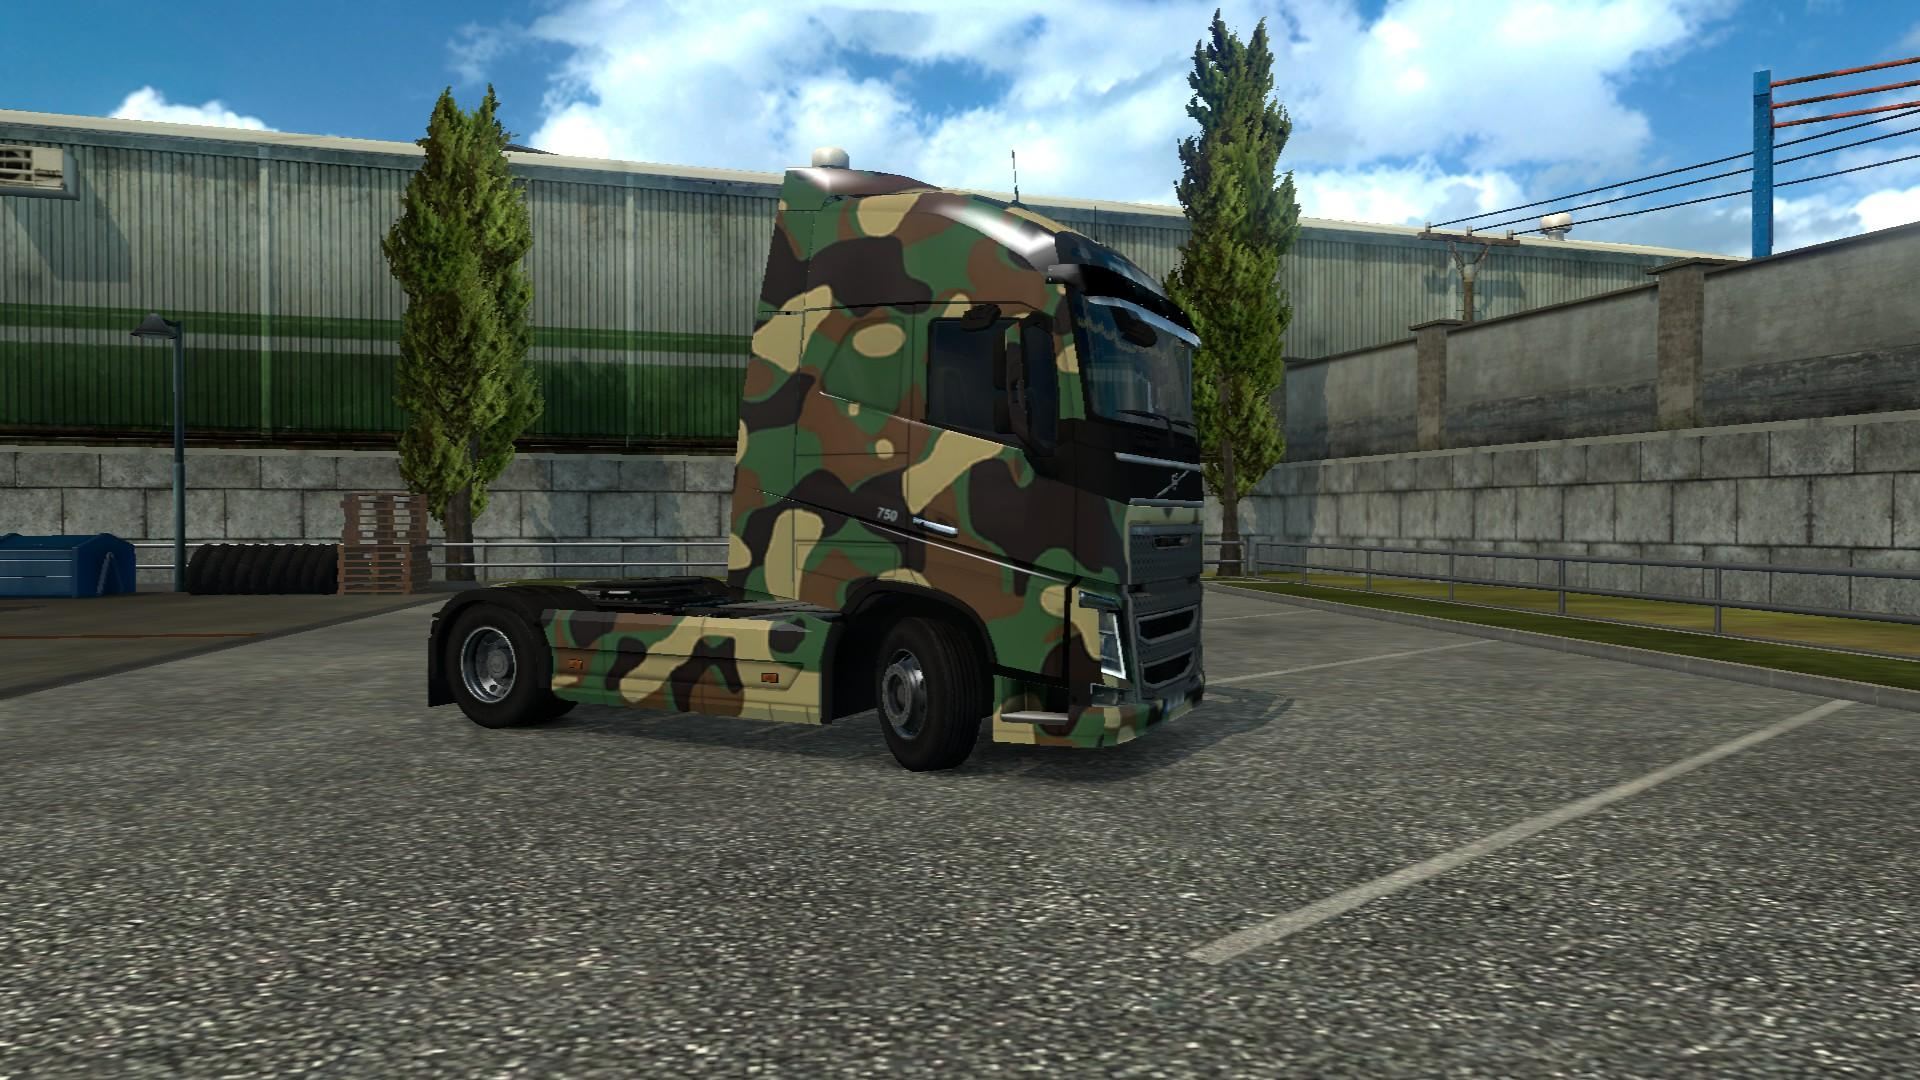 army-skin-for-volvo-fh16-2012-1-21_2